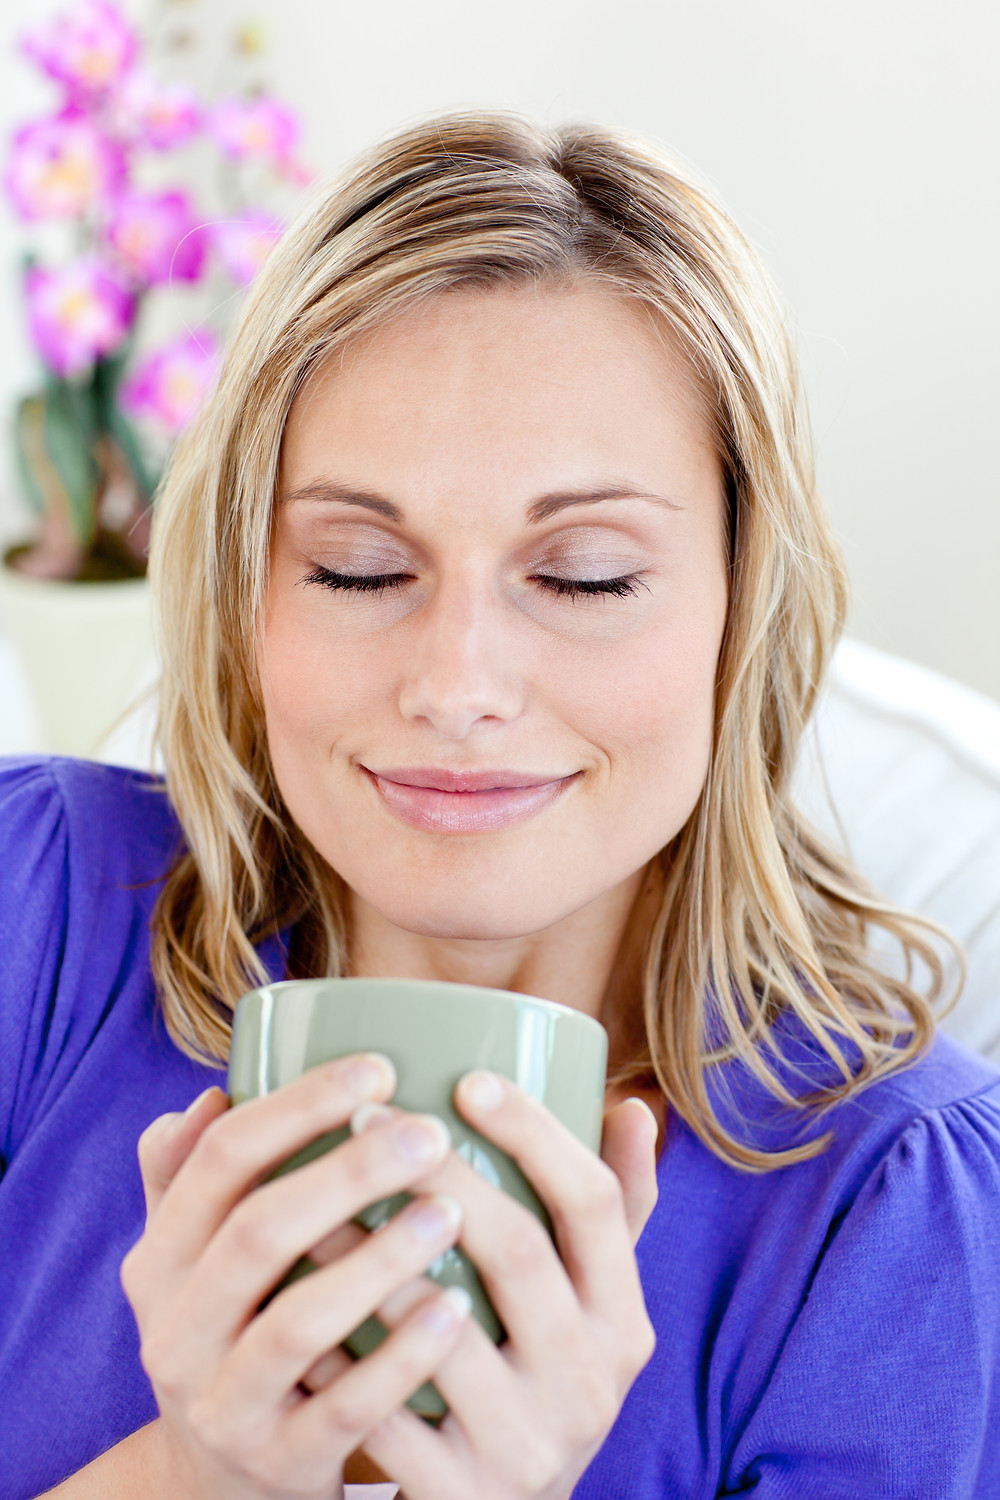 Woman peacefully holding cup of coffee